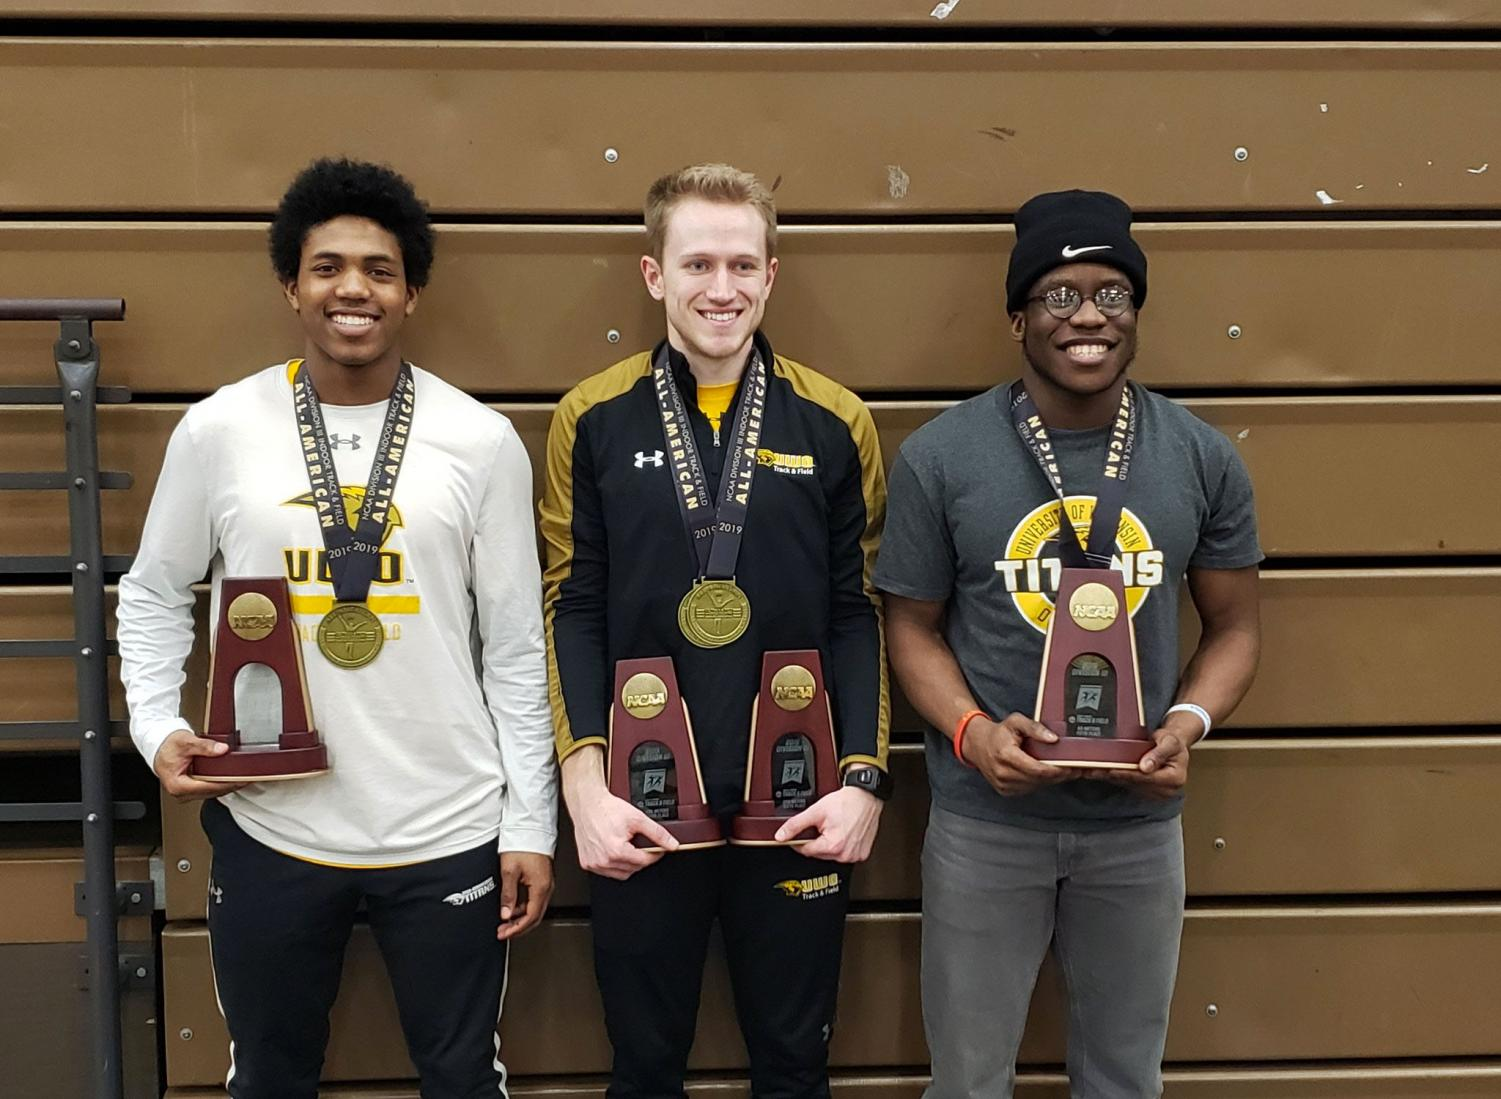 FROM LEFT TO RIGHT: Freshman Johnathan Wilburn, senior Ryan Powers and sophomore Robert Ogbuli pose with their All-American recognition medals and event trophies.